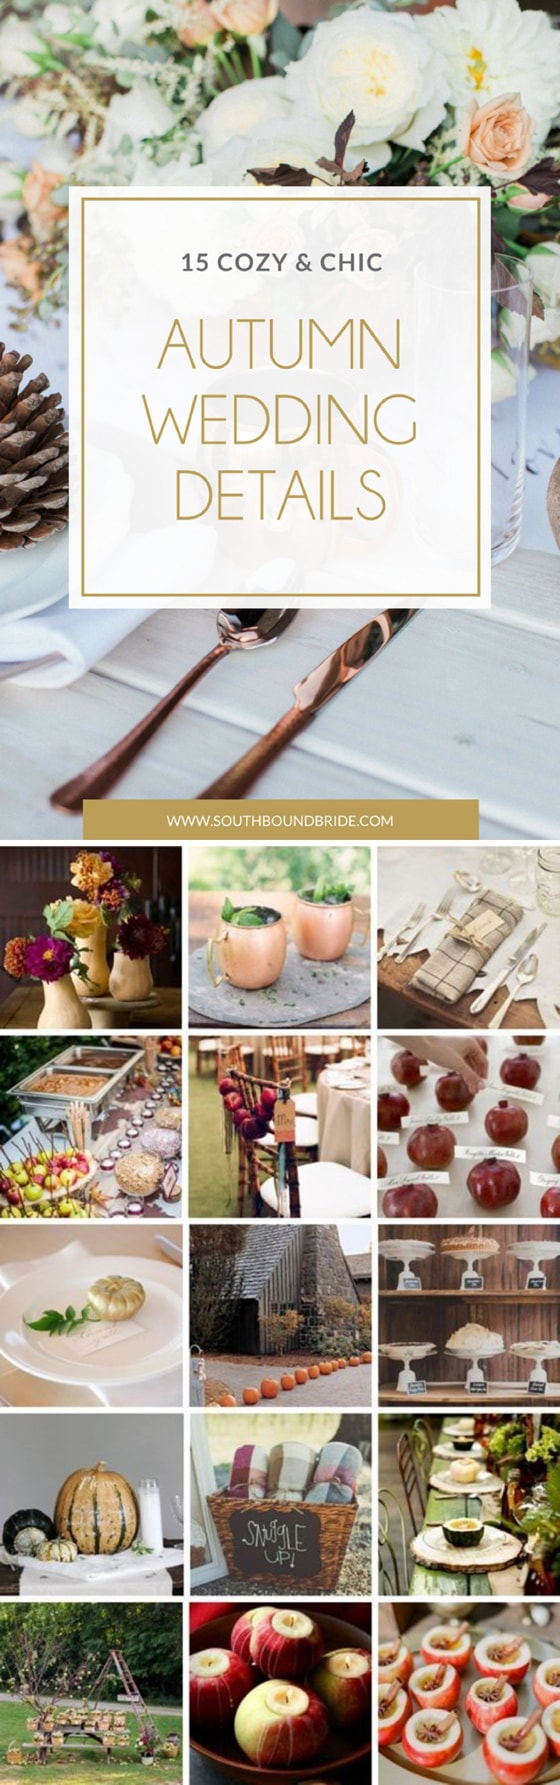 15 Cosy & Chic Autumn Wedding Details & Ideas | SouthBound Bride